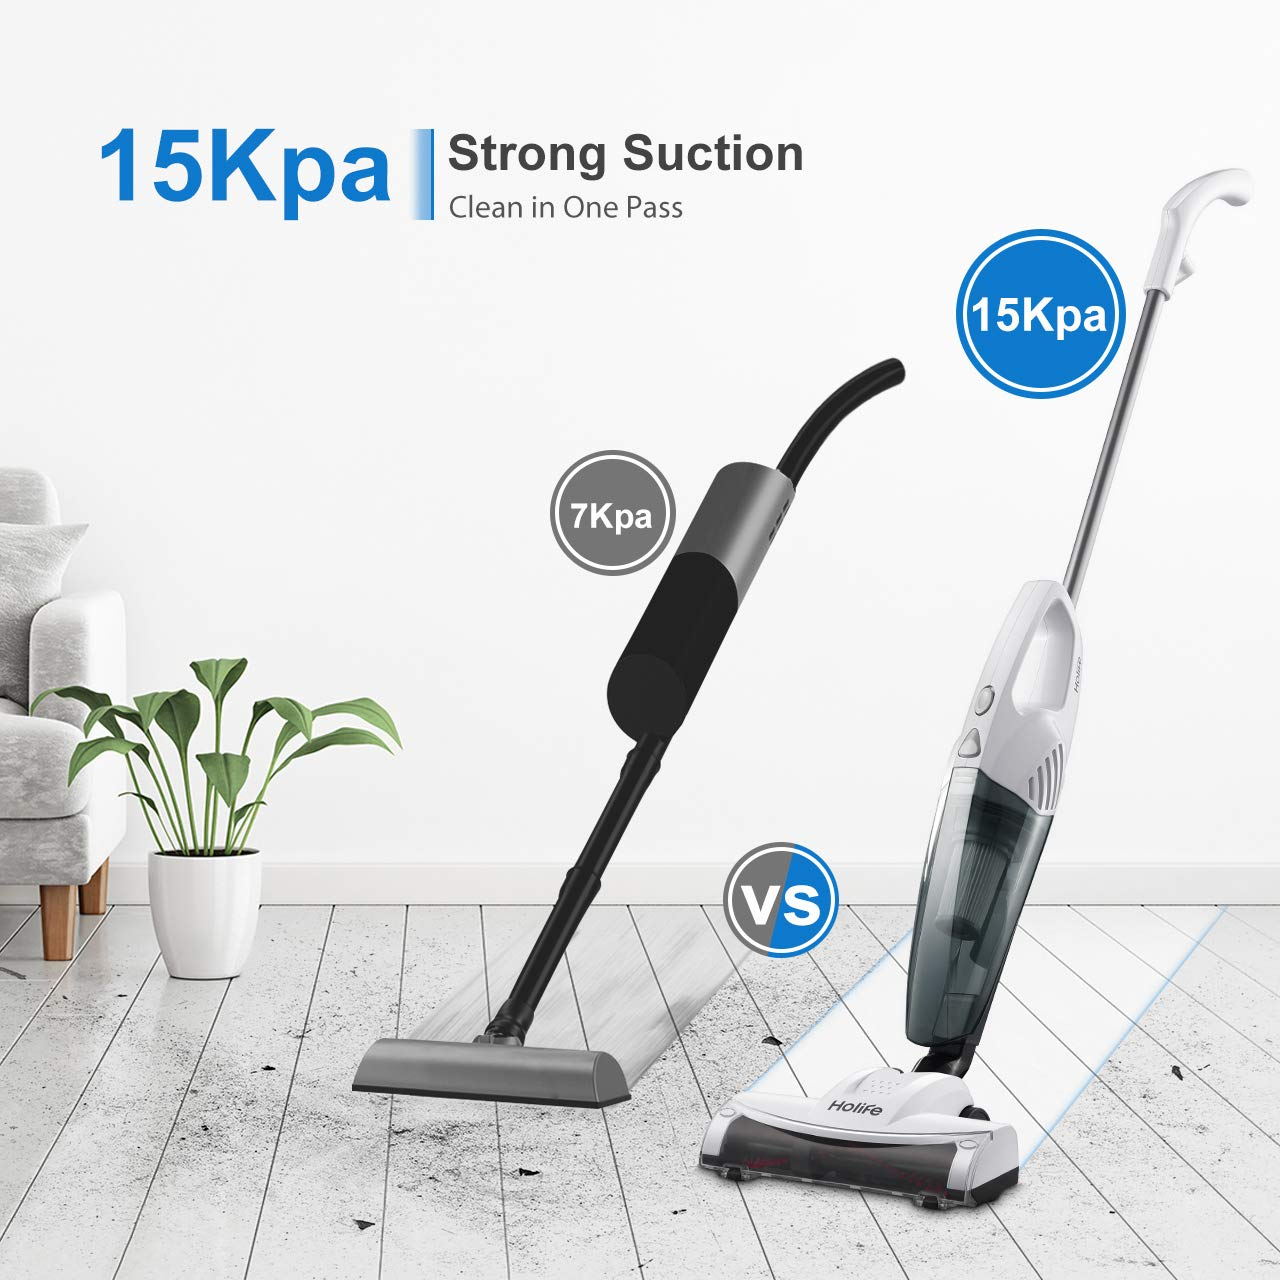 Rolling Brush HoLife Stick Vacuum 2 in 1 Handheld Vacuum Cleaner with 15KPA Powerful Suction Ultra Lightweight Bagless Corded Handheld Vac HEPA Filtration